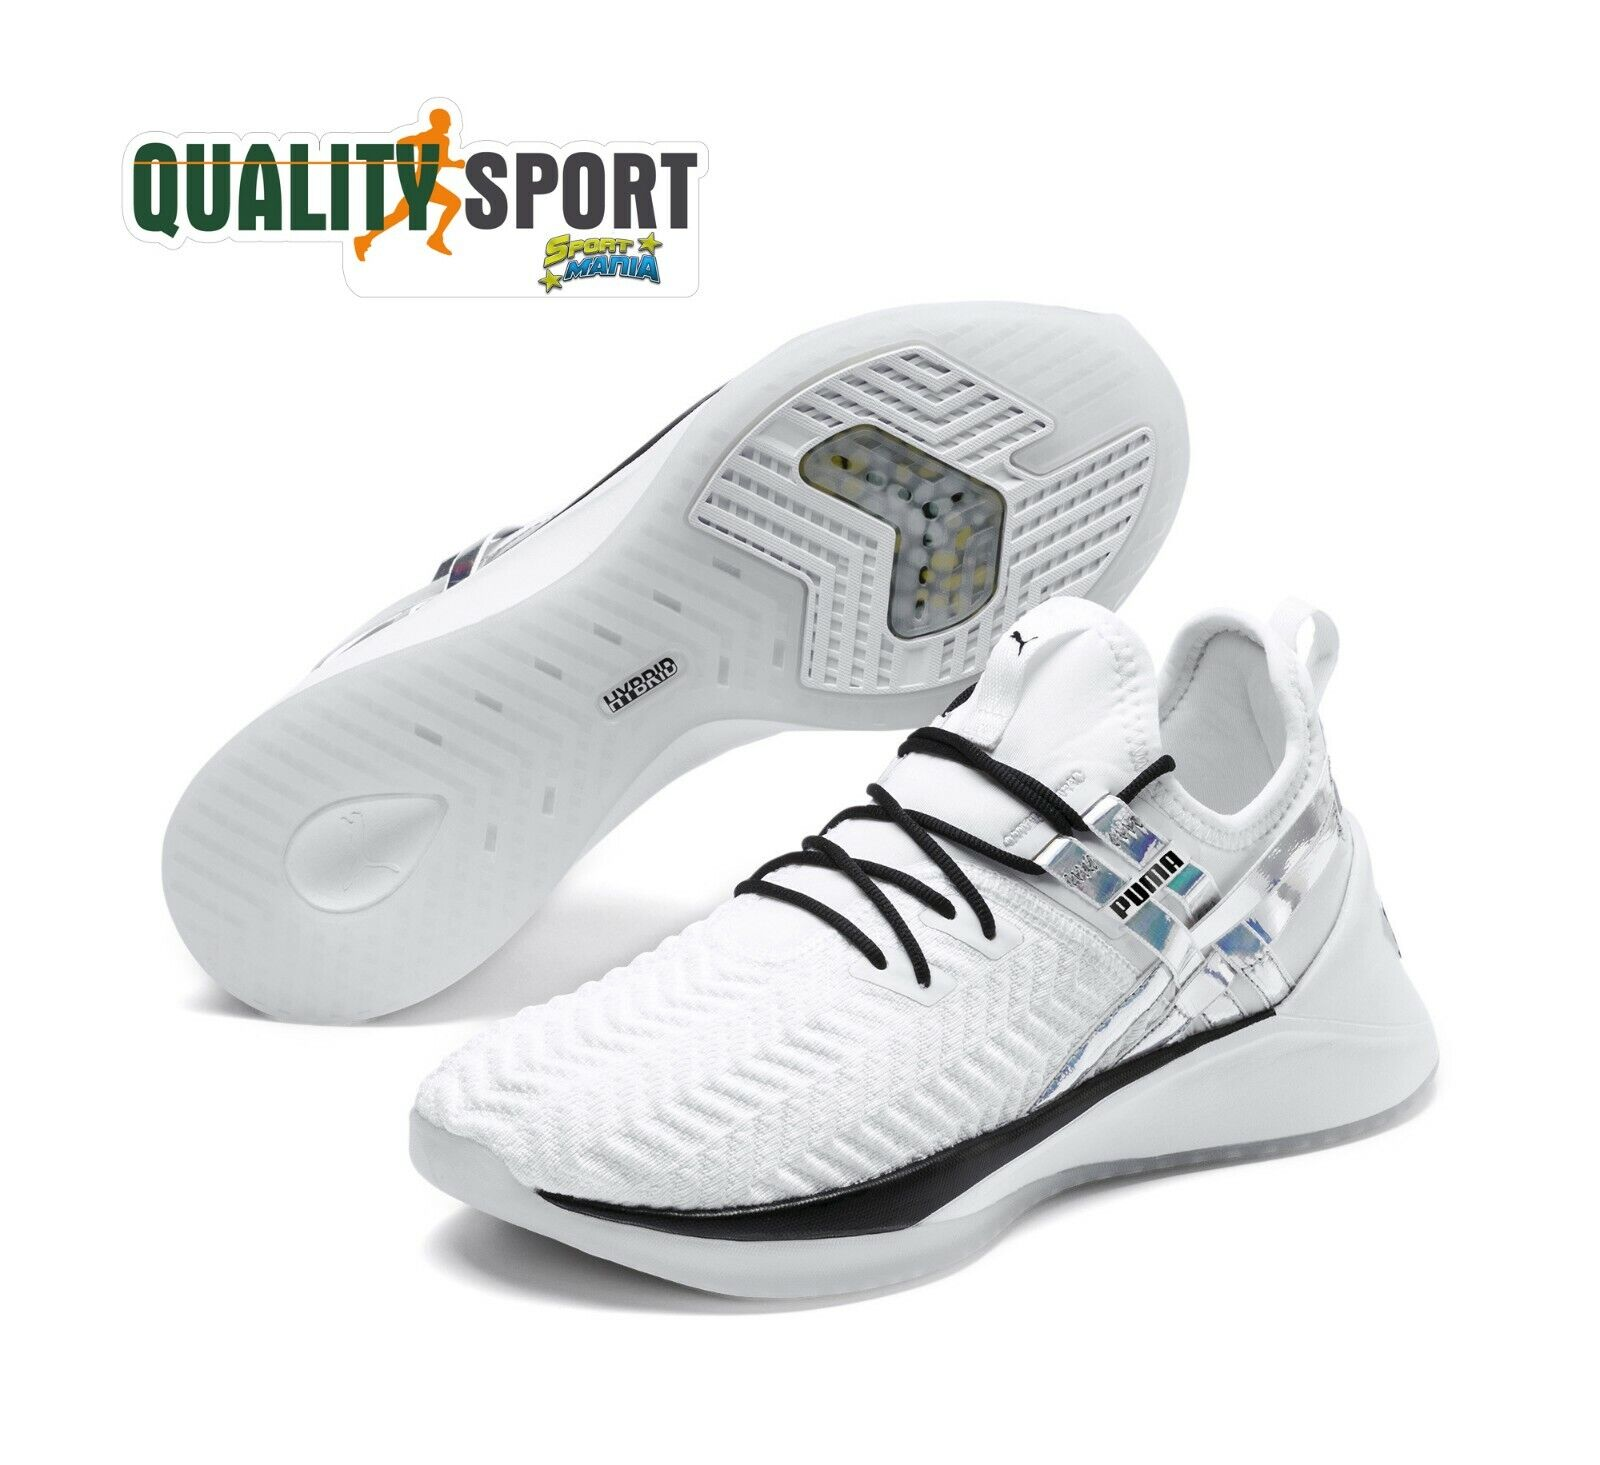 Puma Jaab XT Bianco Adriana Lima shoes women Sportive Sneakers 192240 02 2019